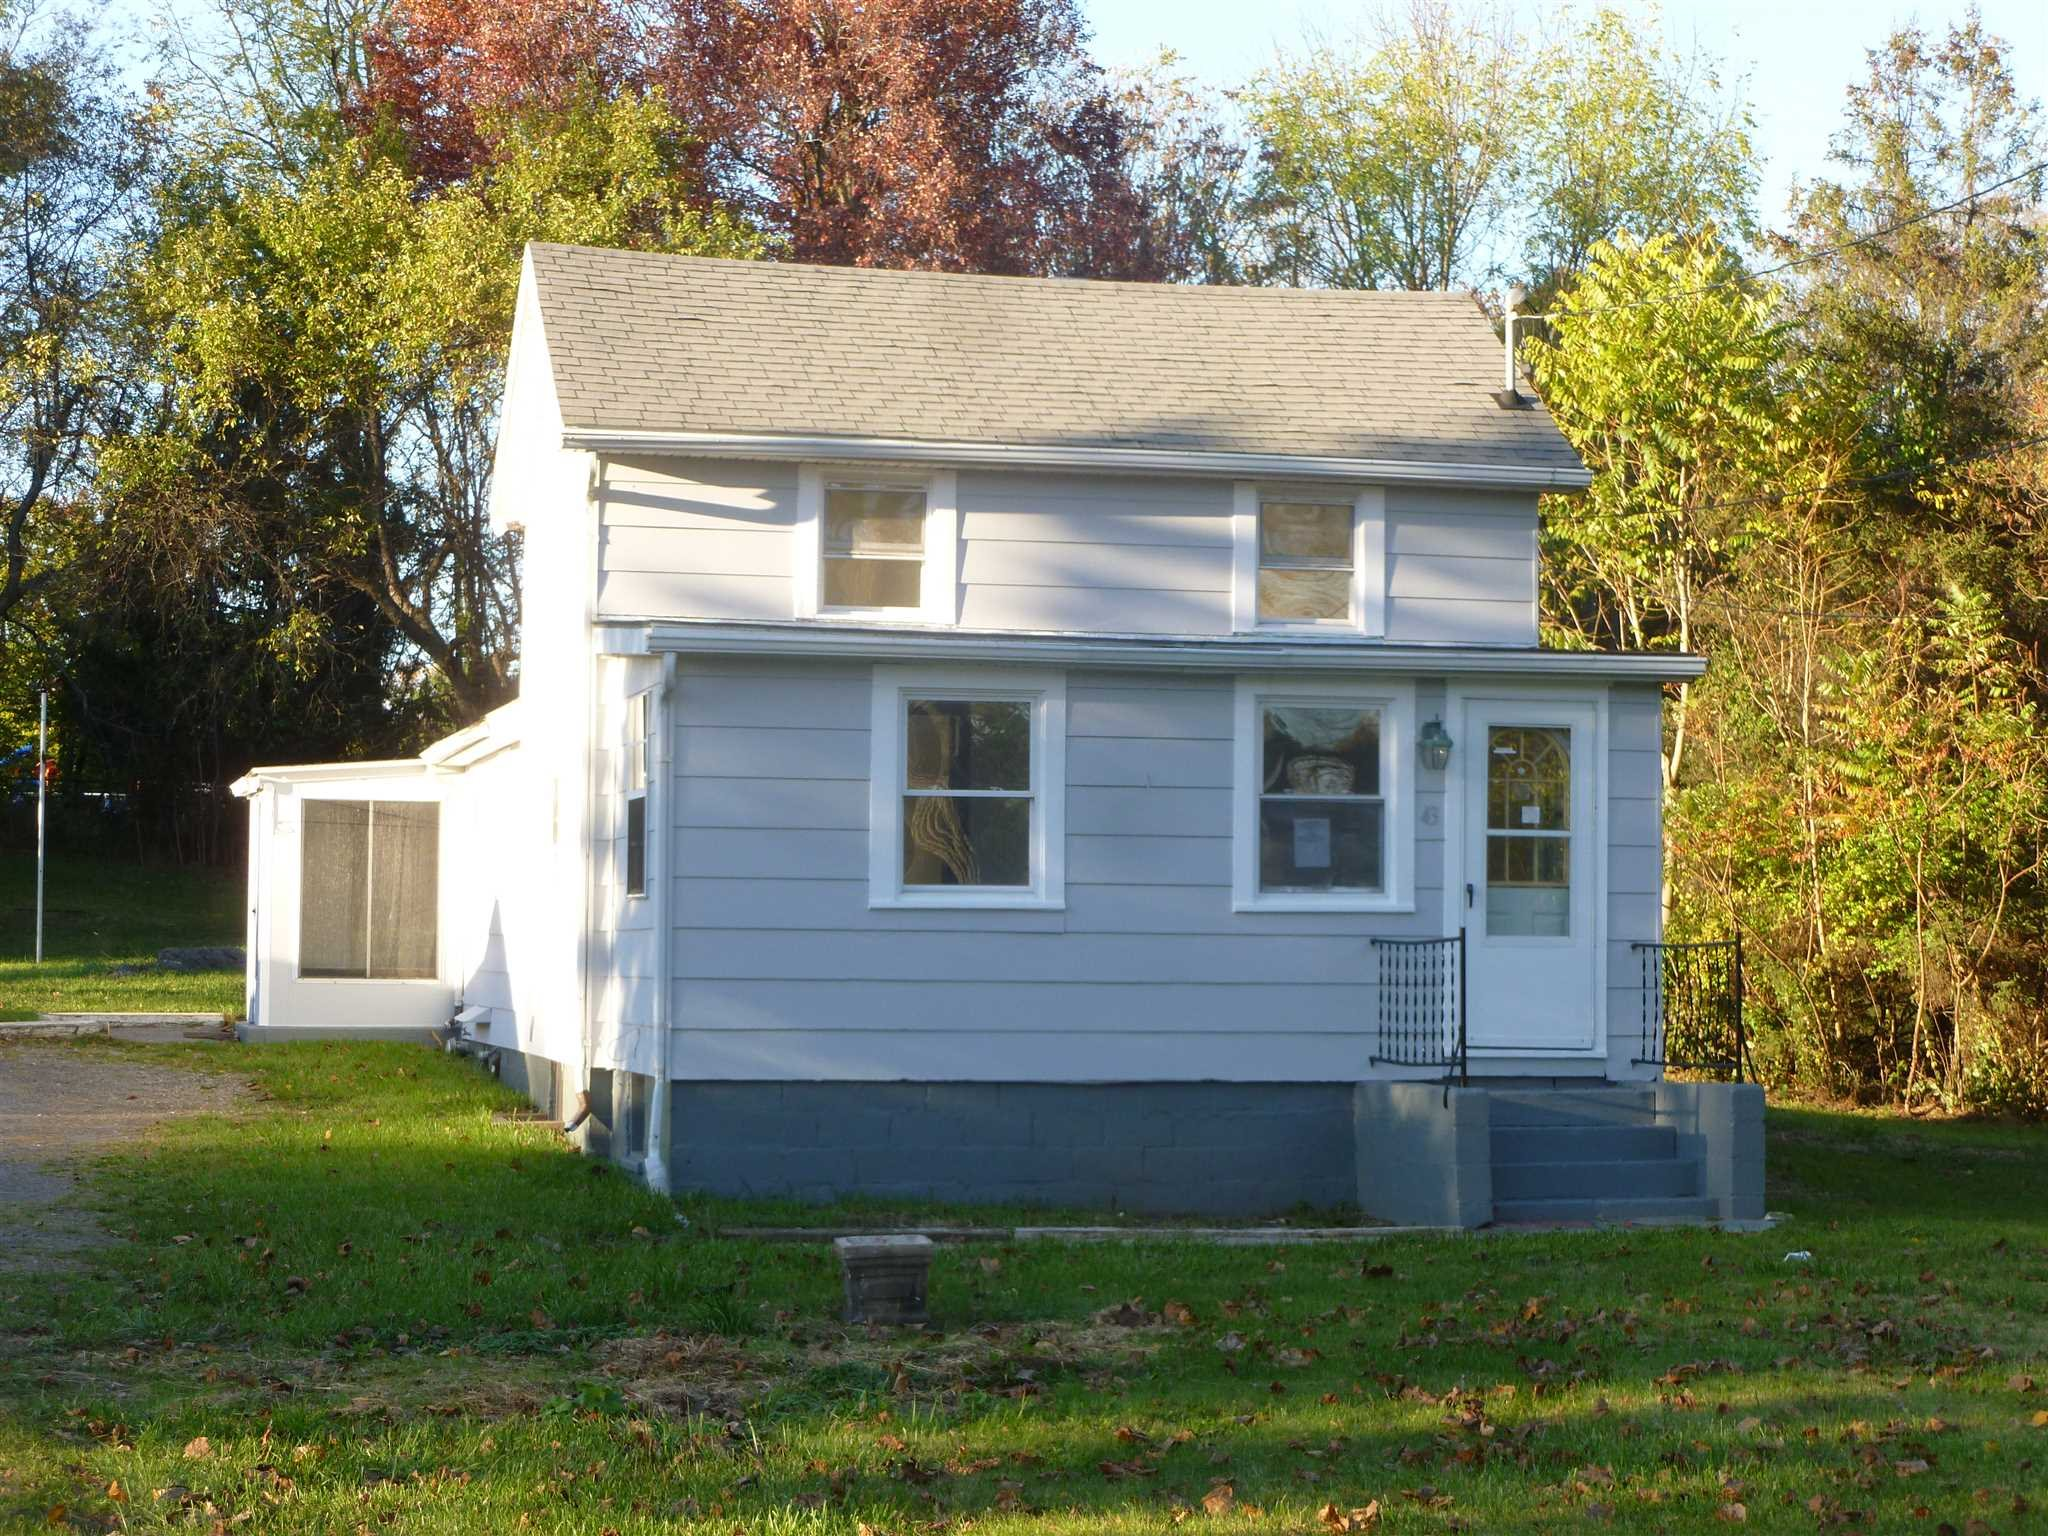 43 MIDDLEBUSH ROAD Wappinger, NY 12590 - MLS #: 366515